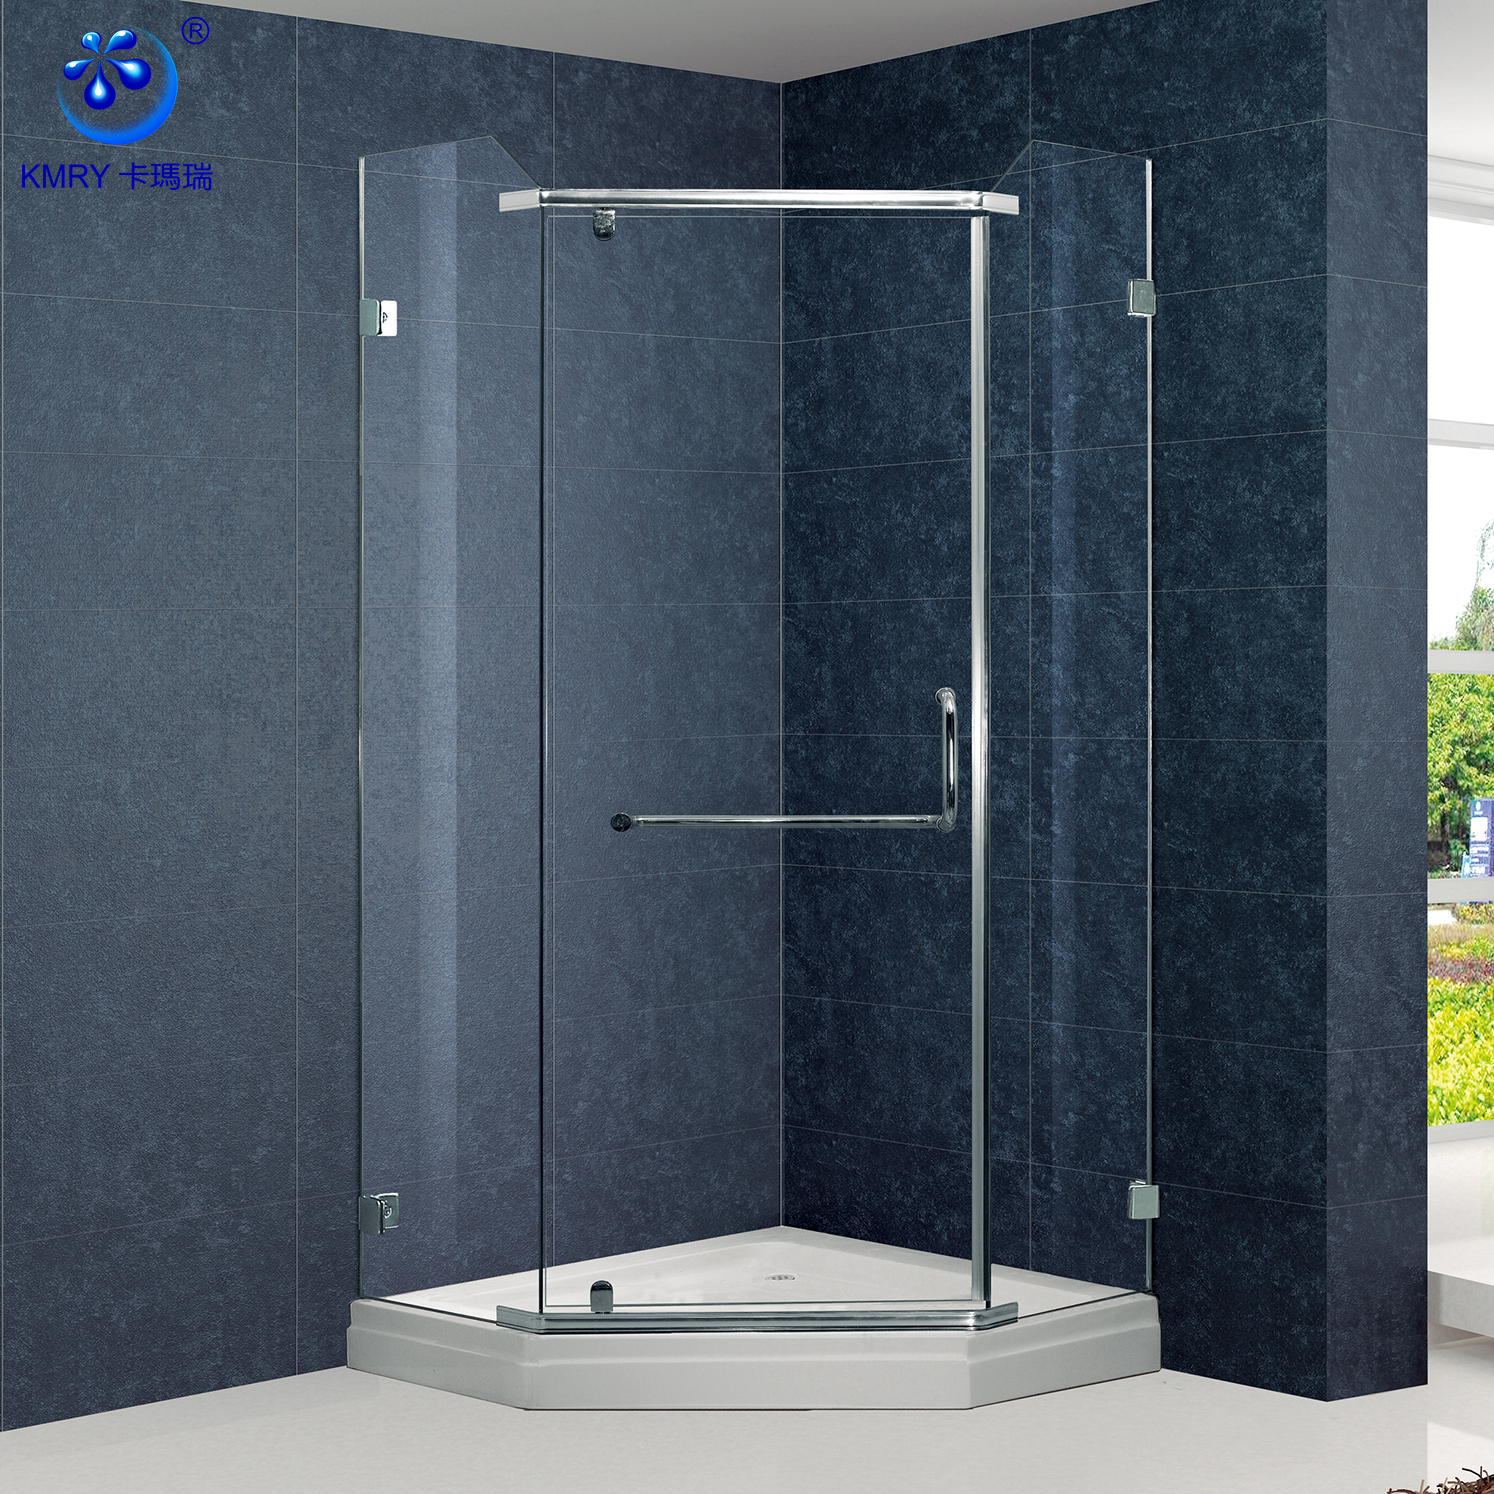 Frameless Neo Angle Shower Doors Wholesale, Shower Door Suppliers ...